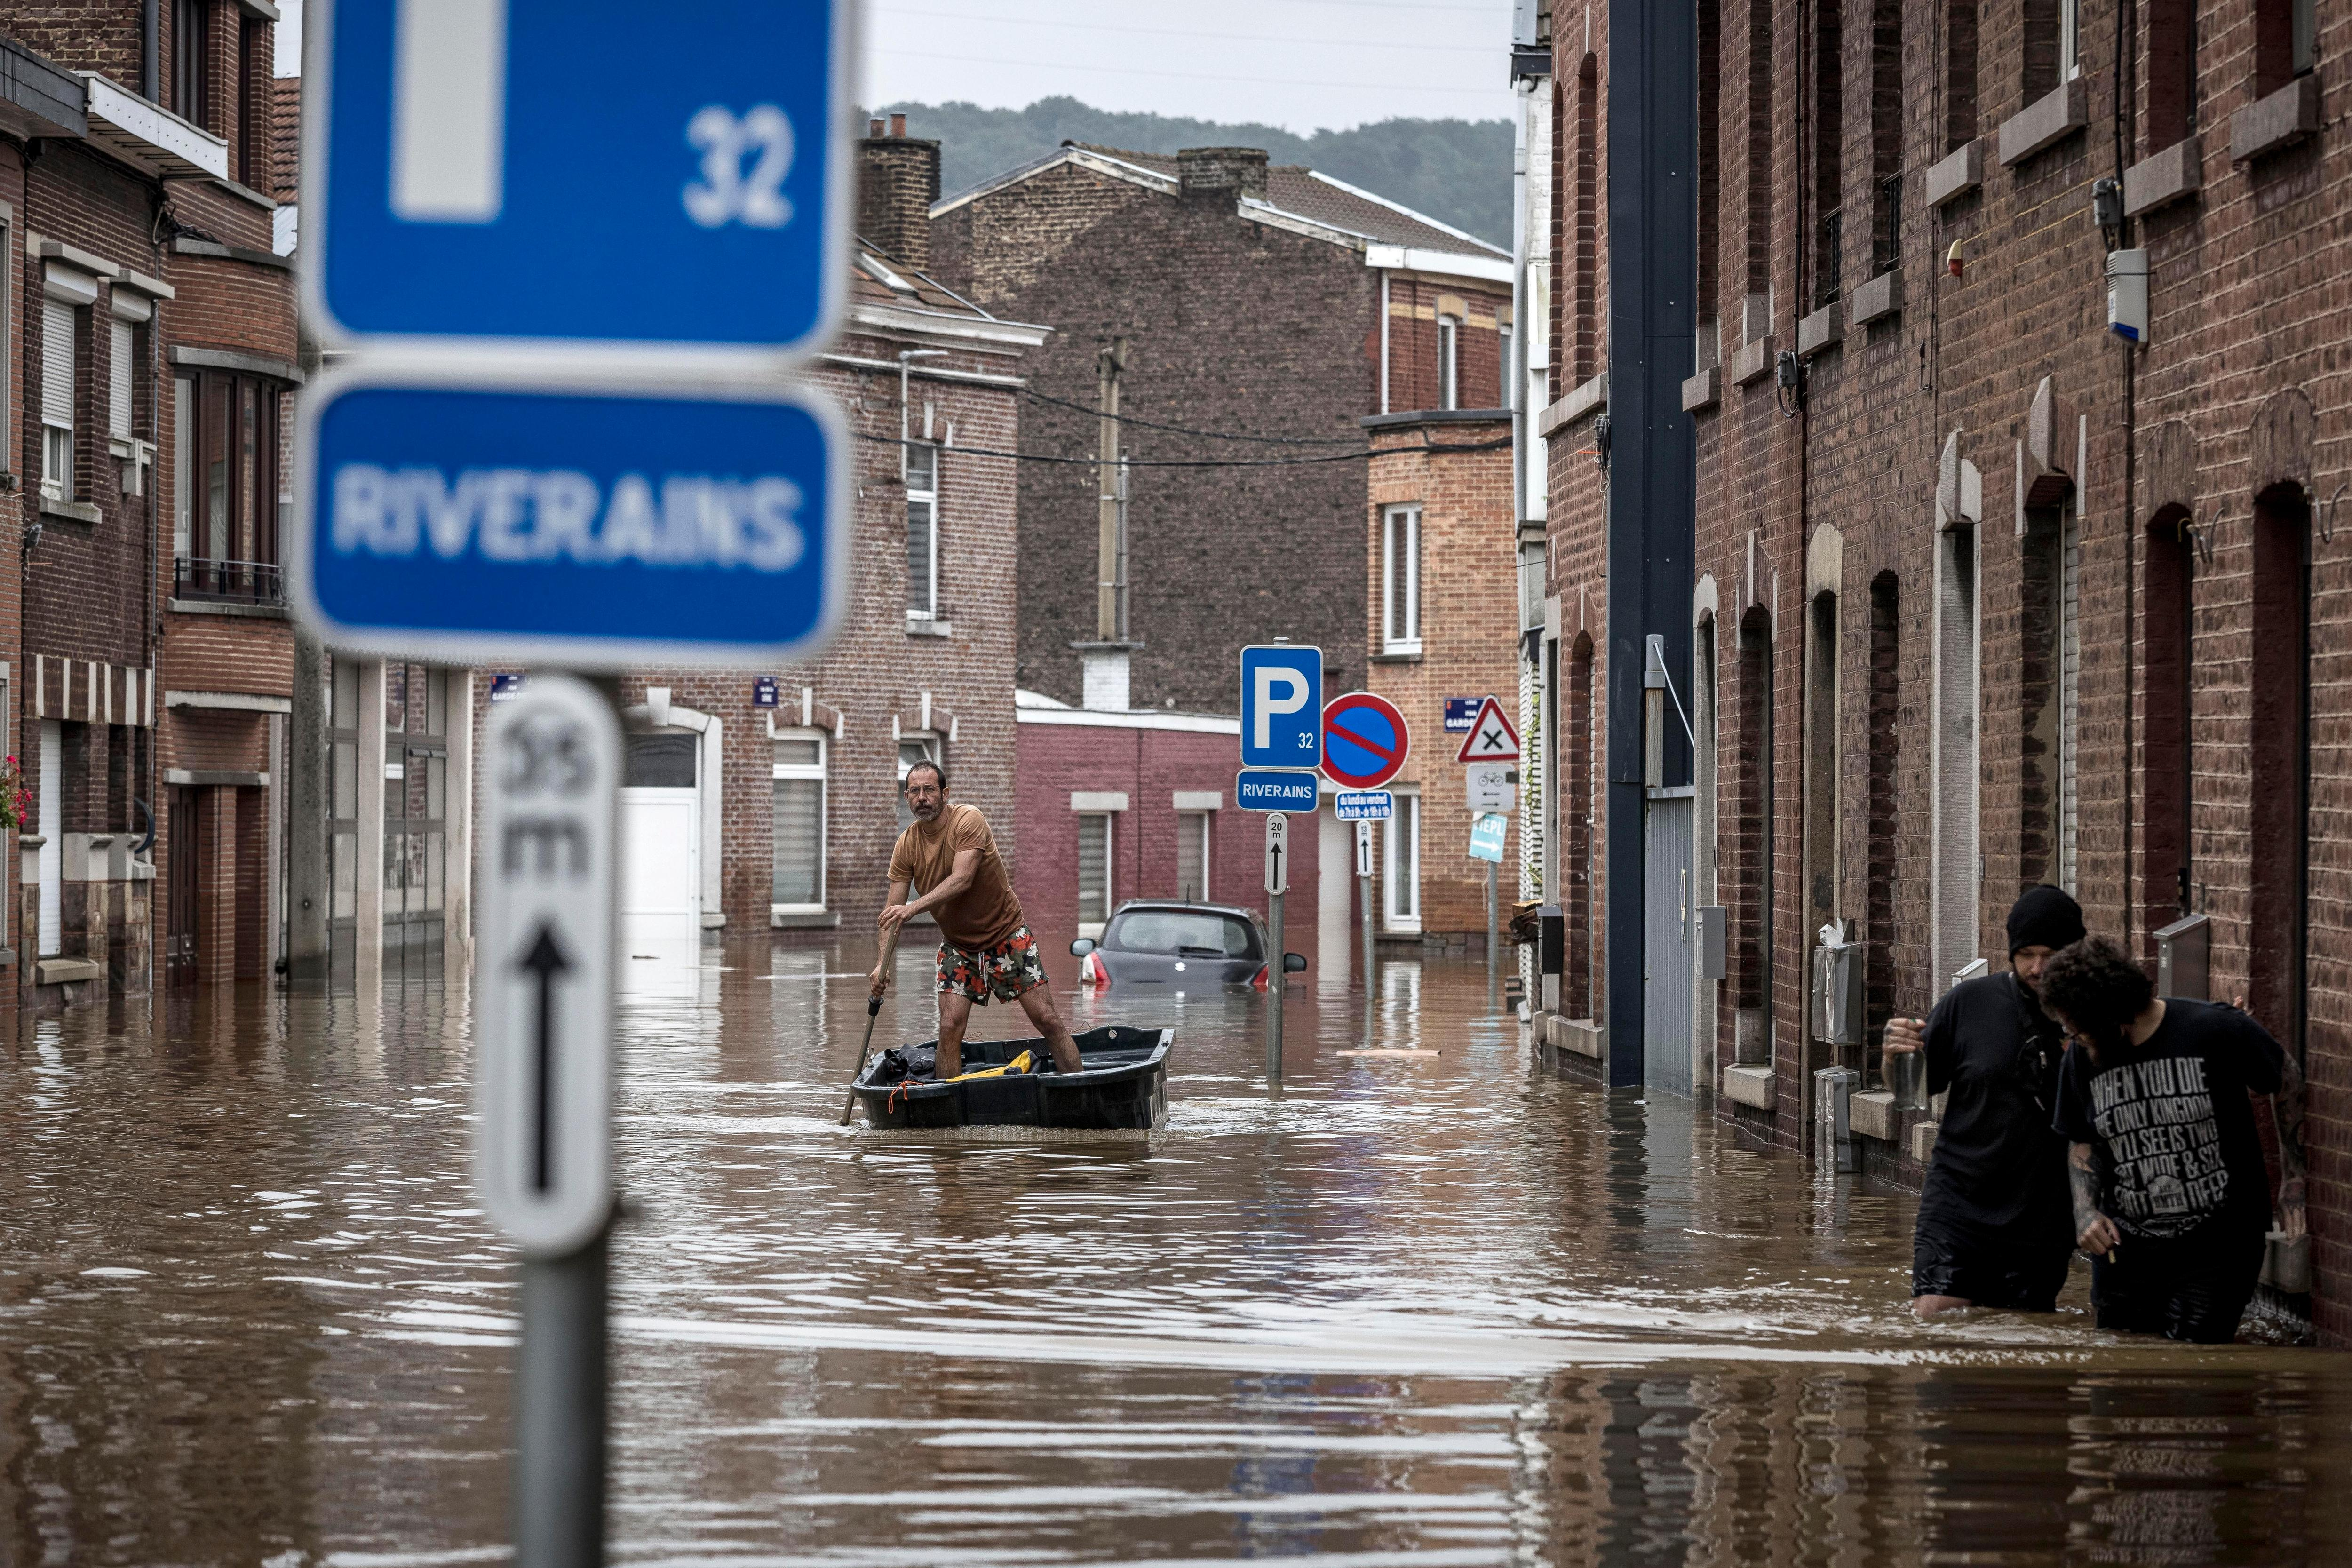 A man stands up rowing a small boat through a flooded street in Liege, Belgium.